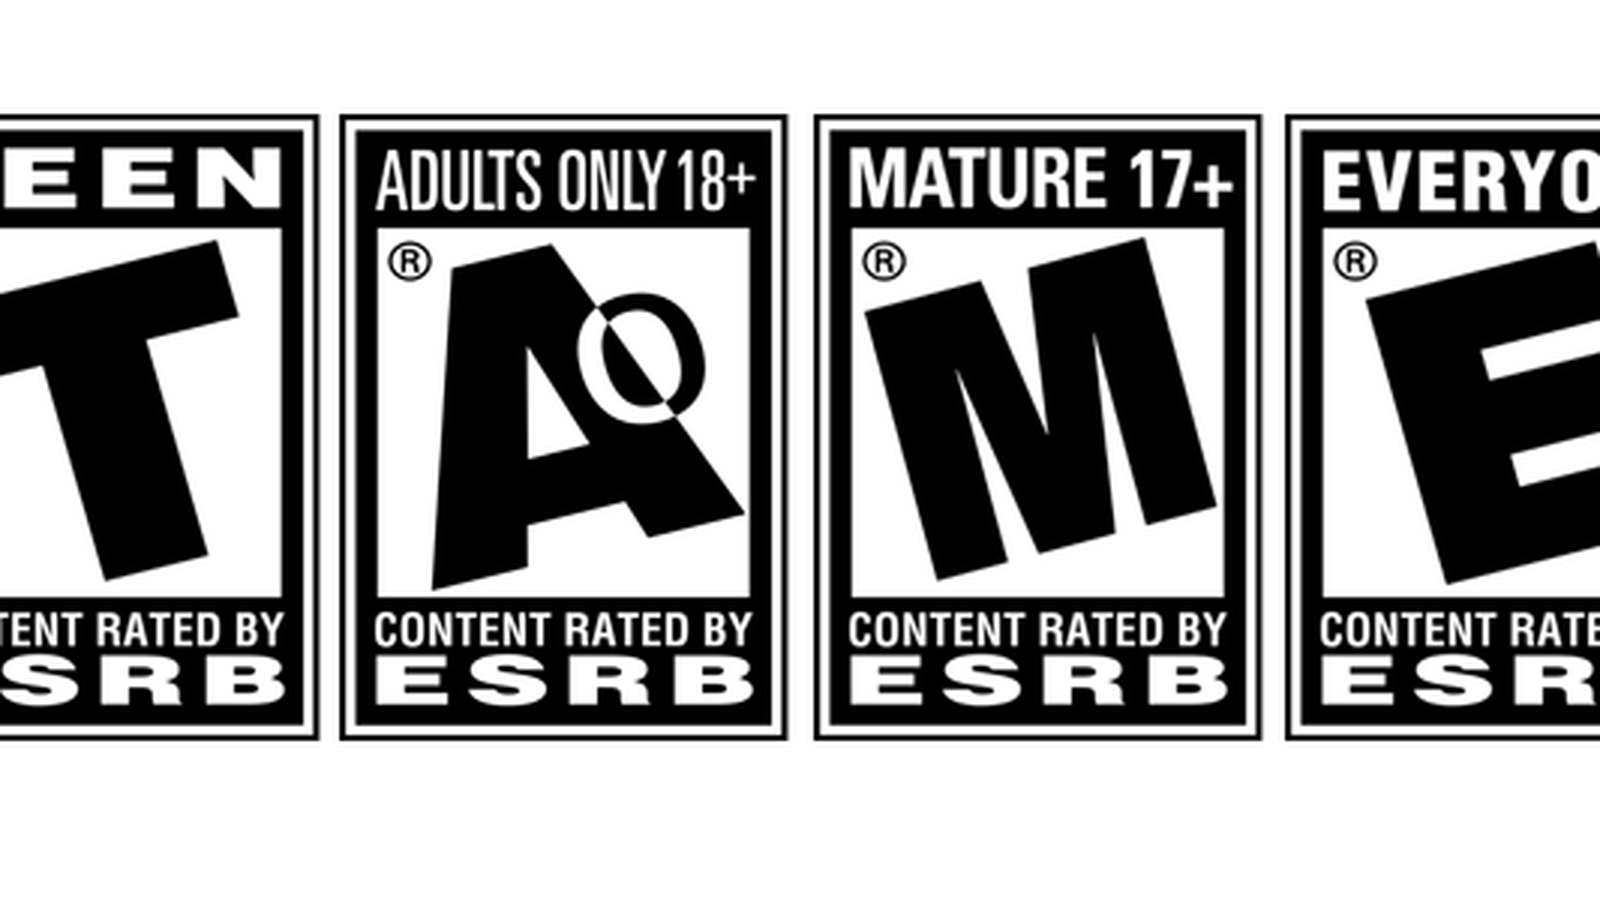 Esrb m rating png. Details its toothless mobile